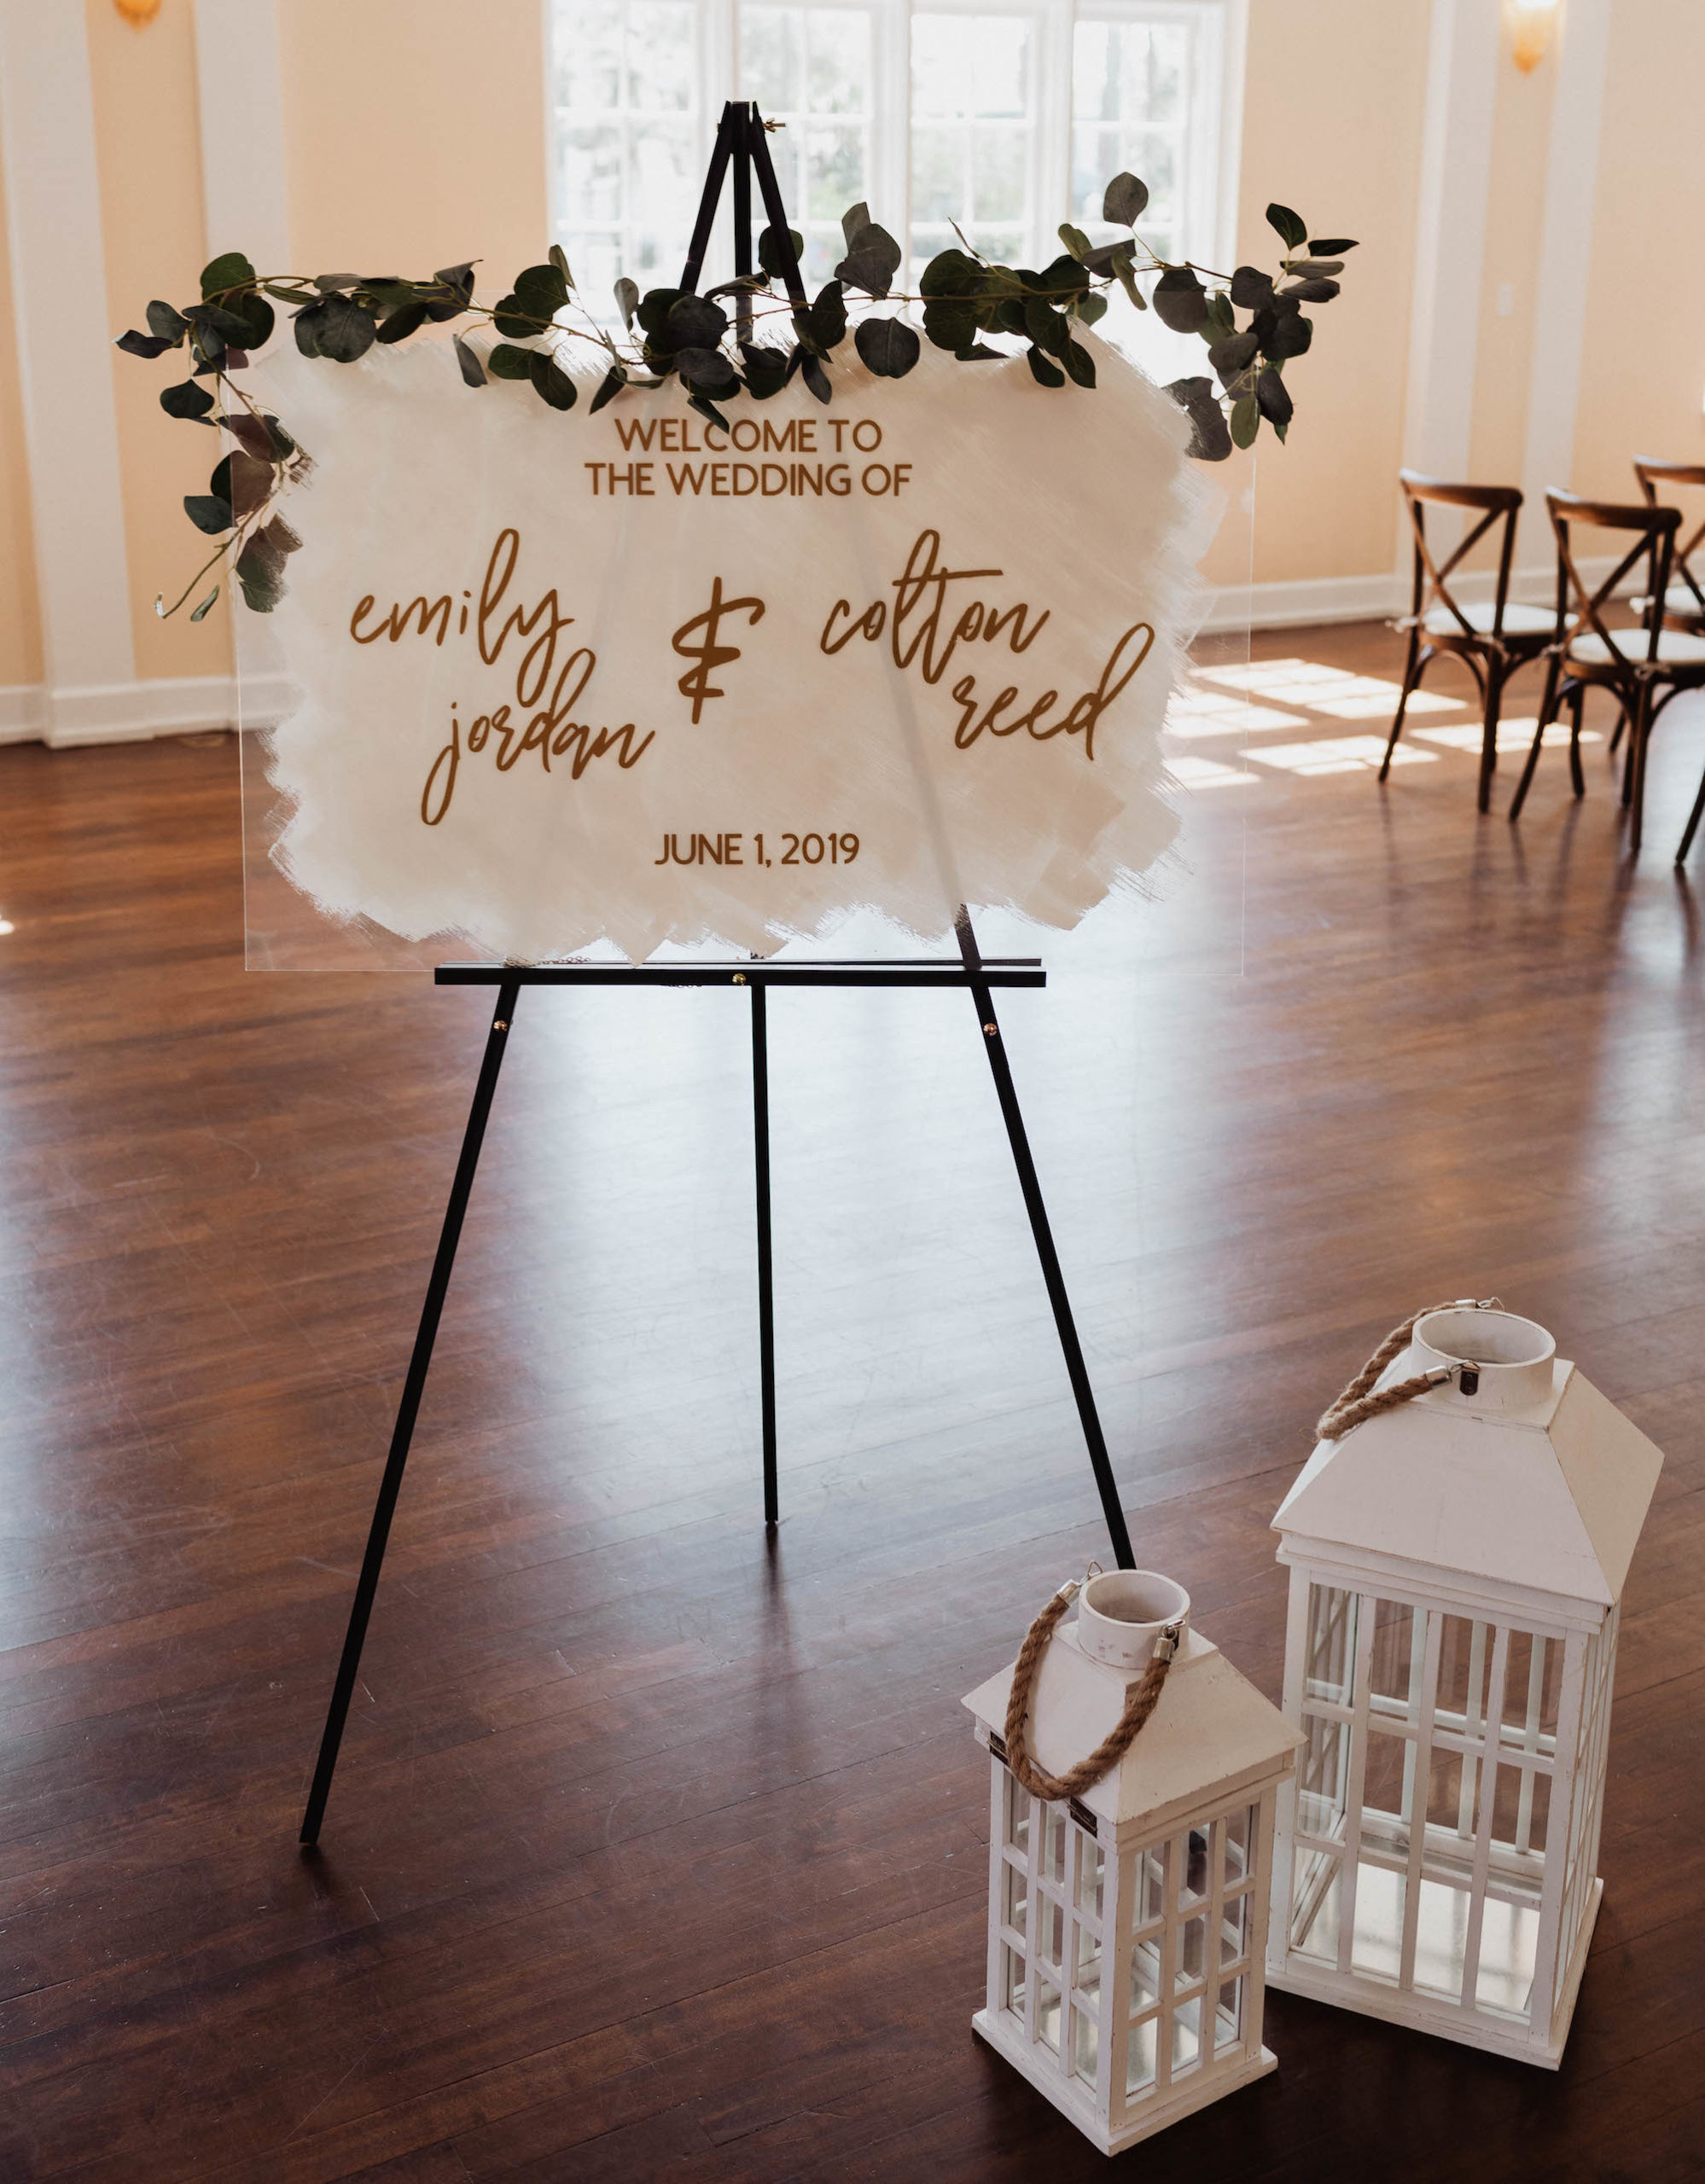 Classic and Simple Acrylic and White with Gold Calligraphy Welcome Sign with Eucalyptus Garland, White Lanterns